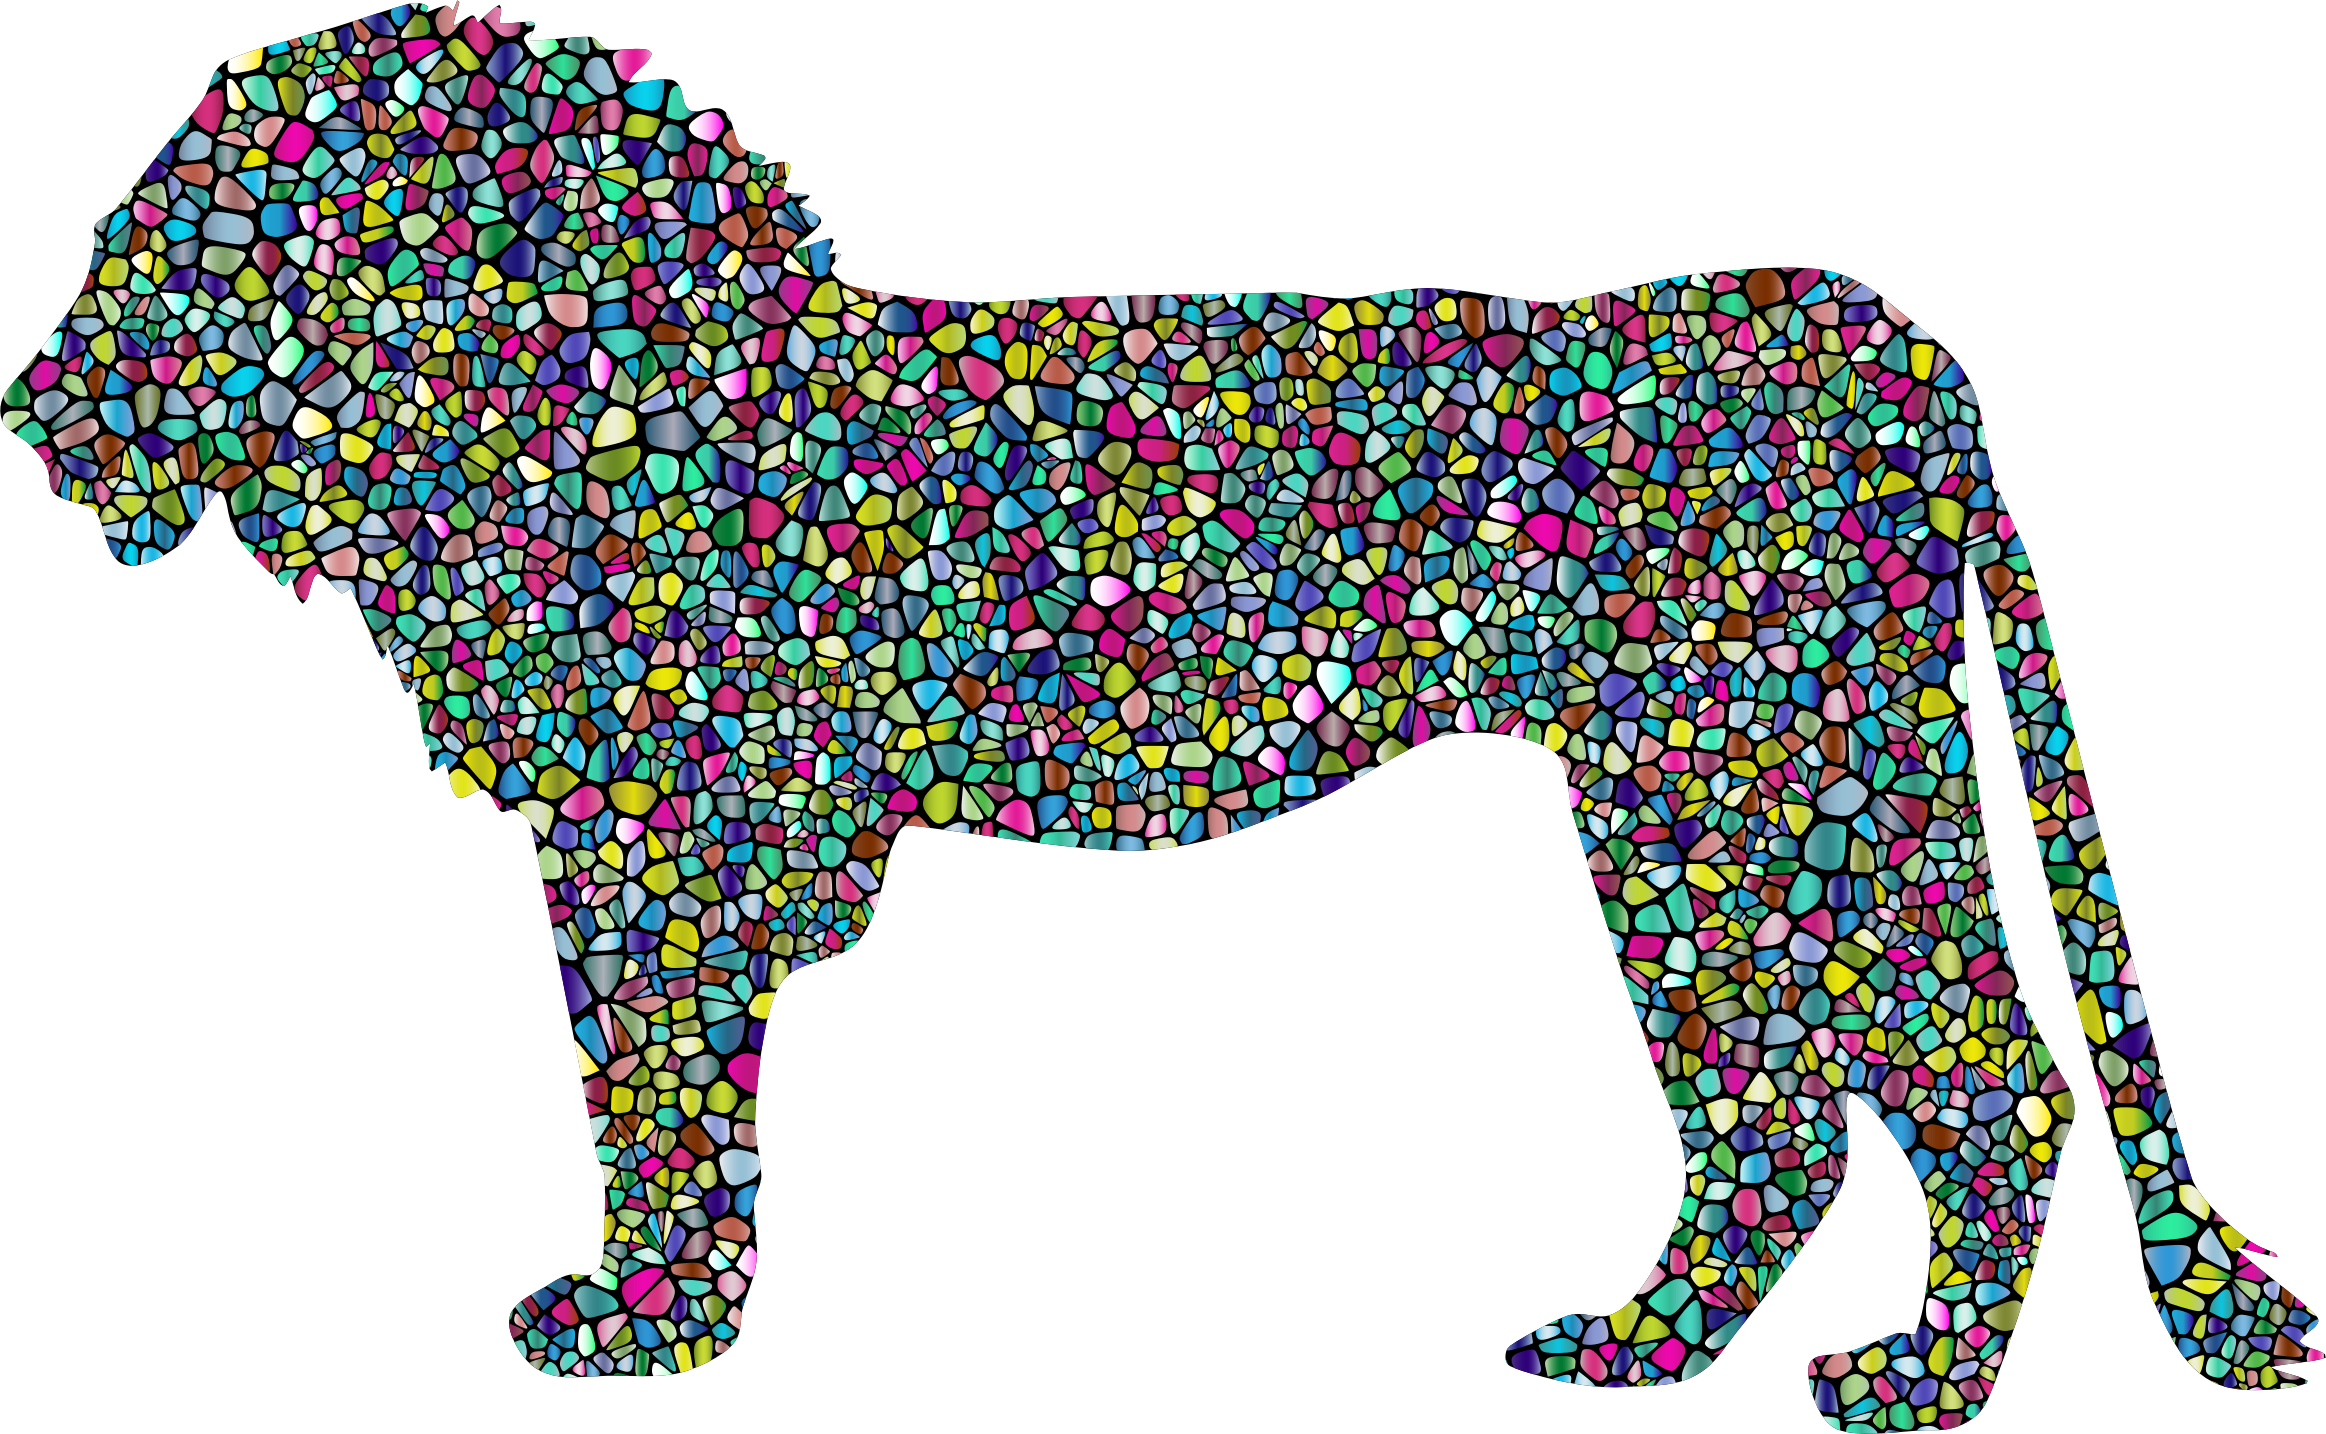 Polyprismatic Tiled Lion Profile Silhouette With Background by GDJ